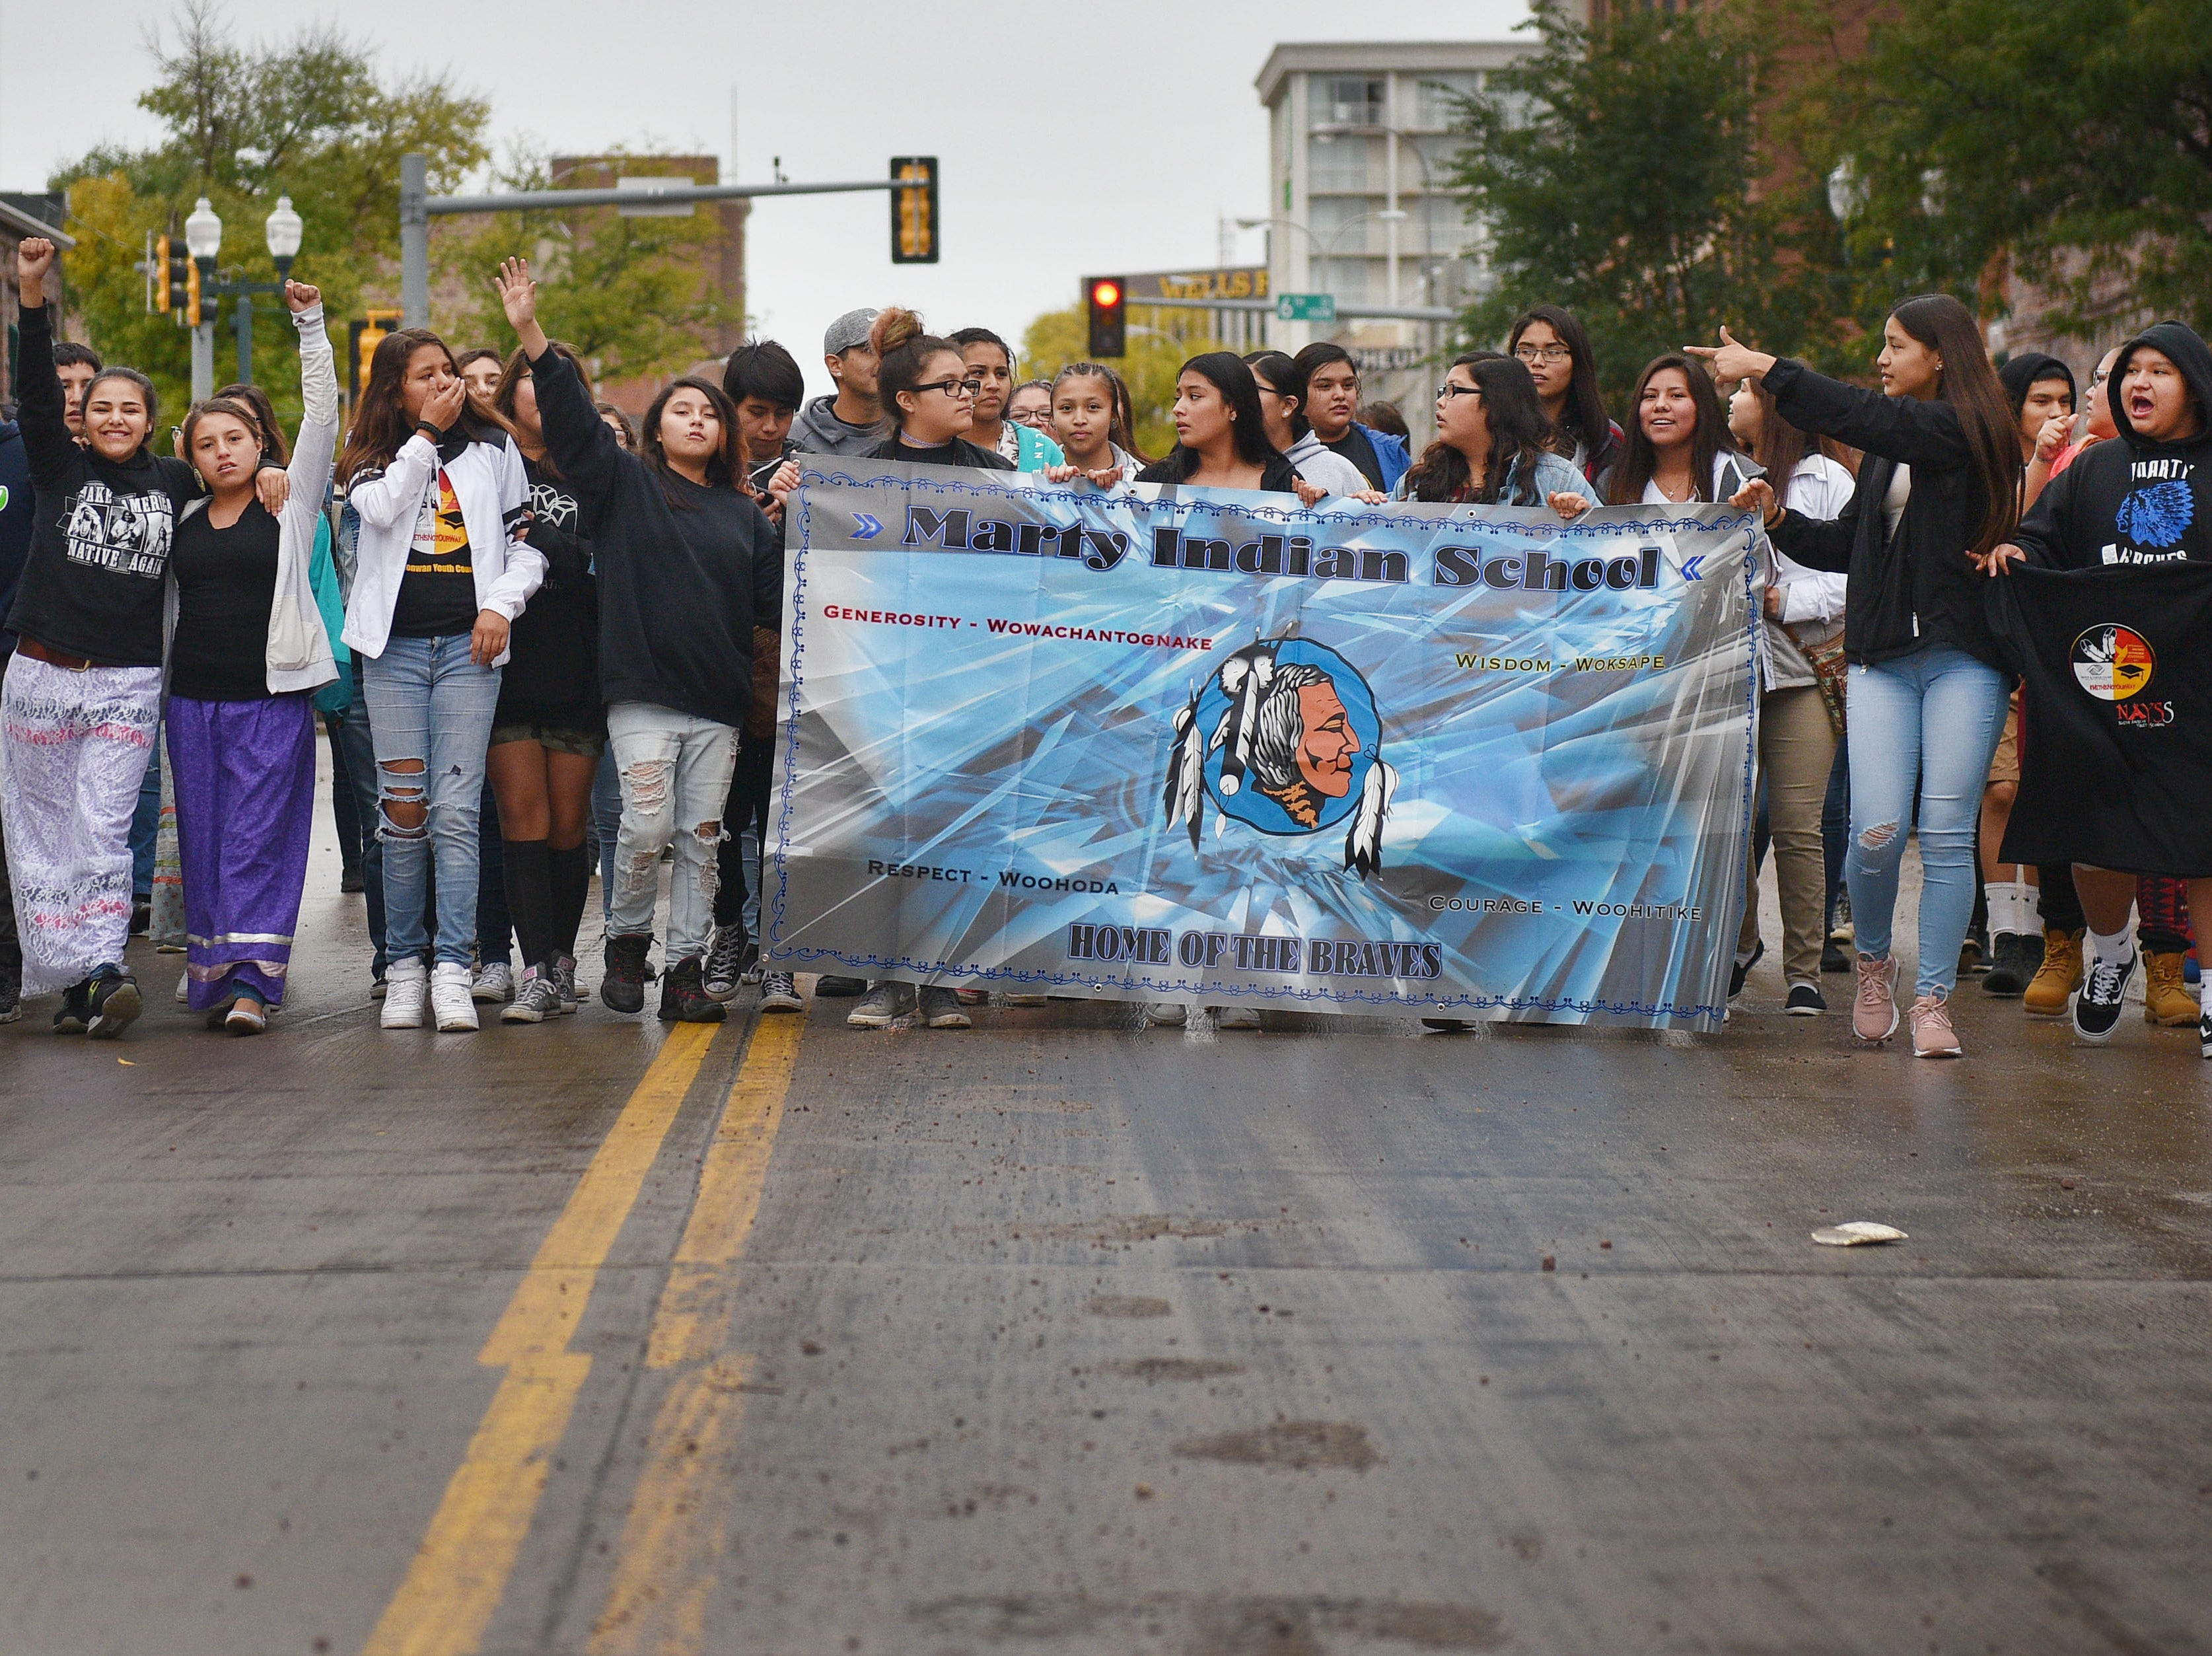 "Marty Indian School participates in the Native Americans' Day parade Monday, Oct. 8, in downtown Sioux Falls. The theme this year was ""Honoring Our Elders."""